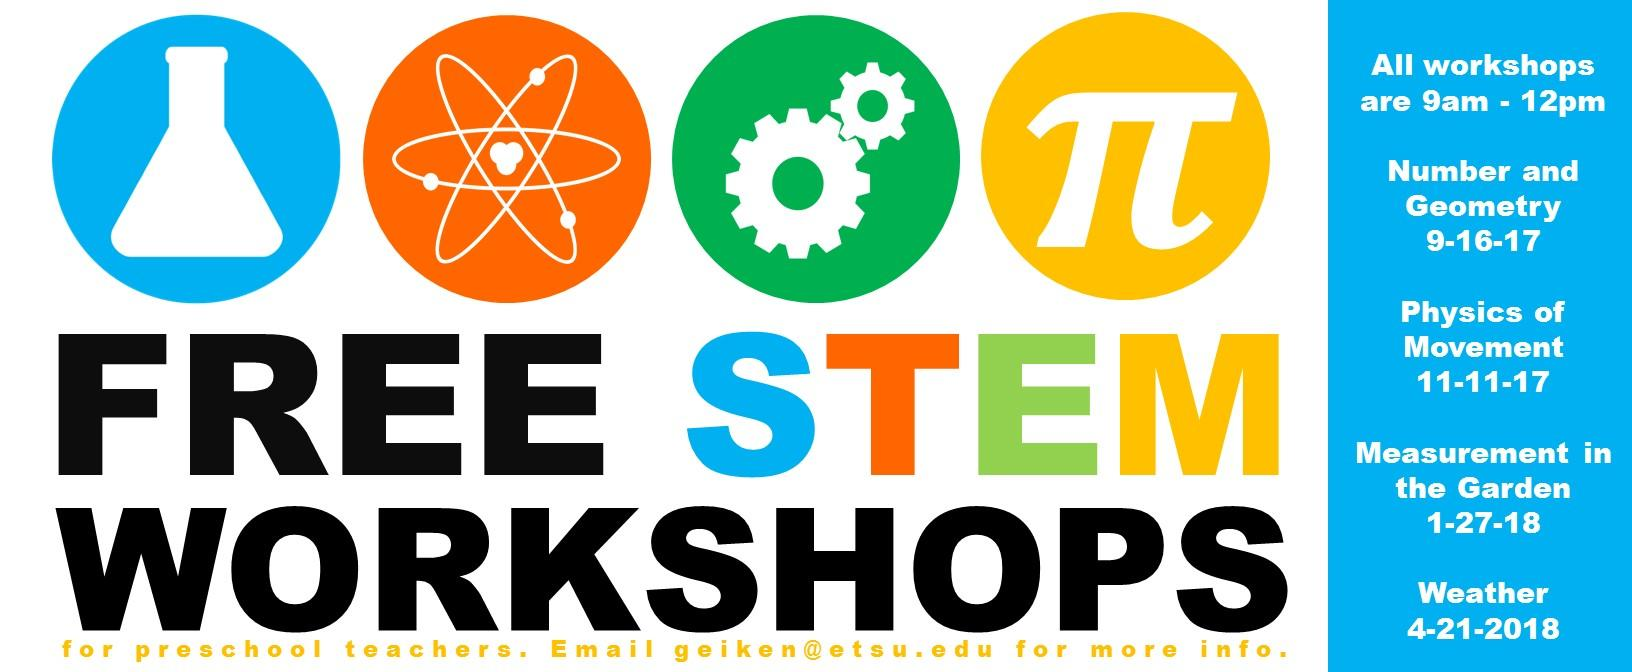 Free STEM workshops 